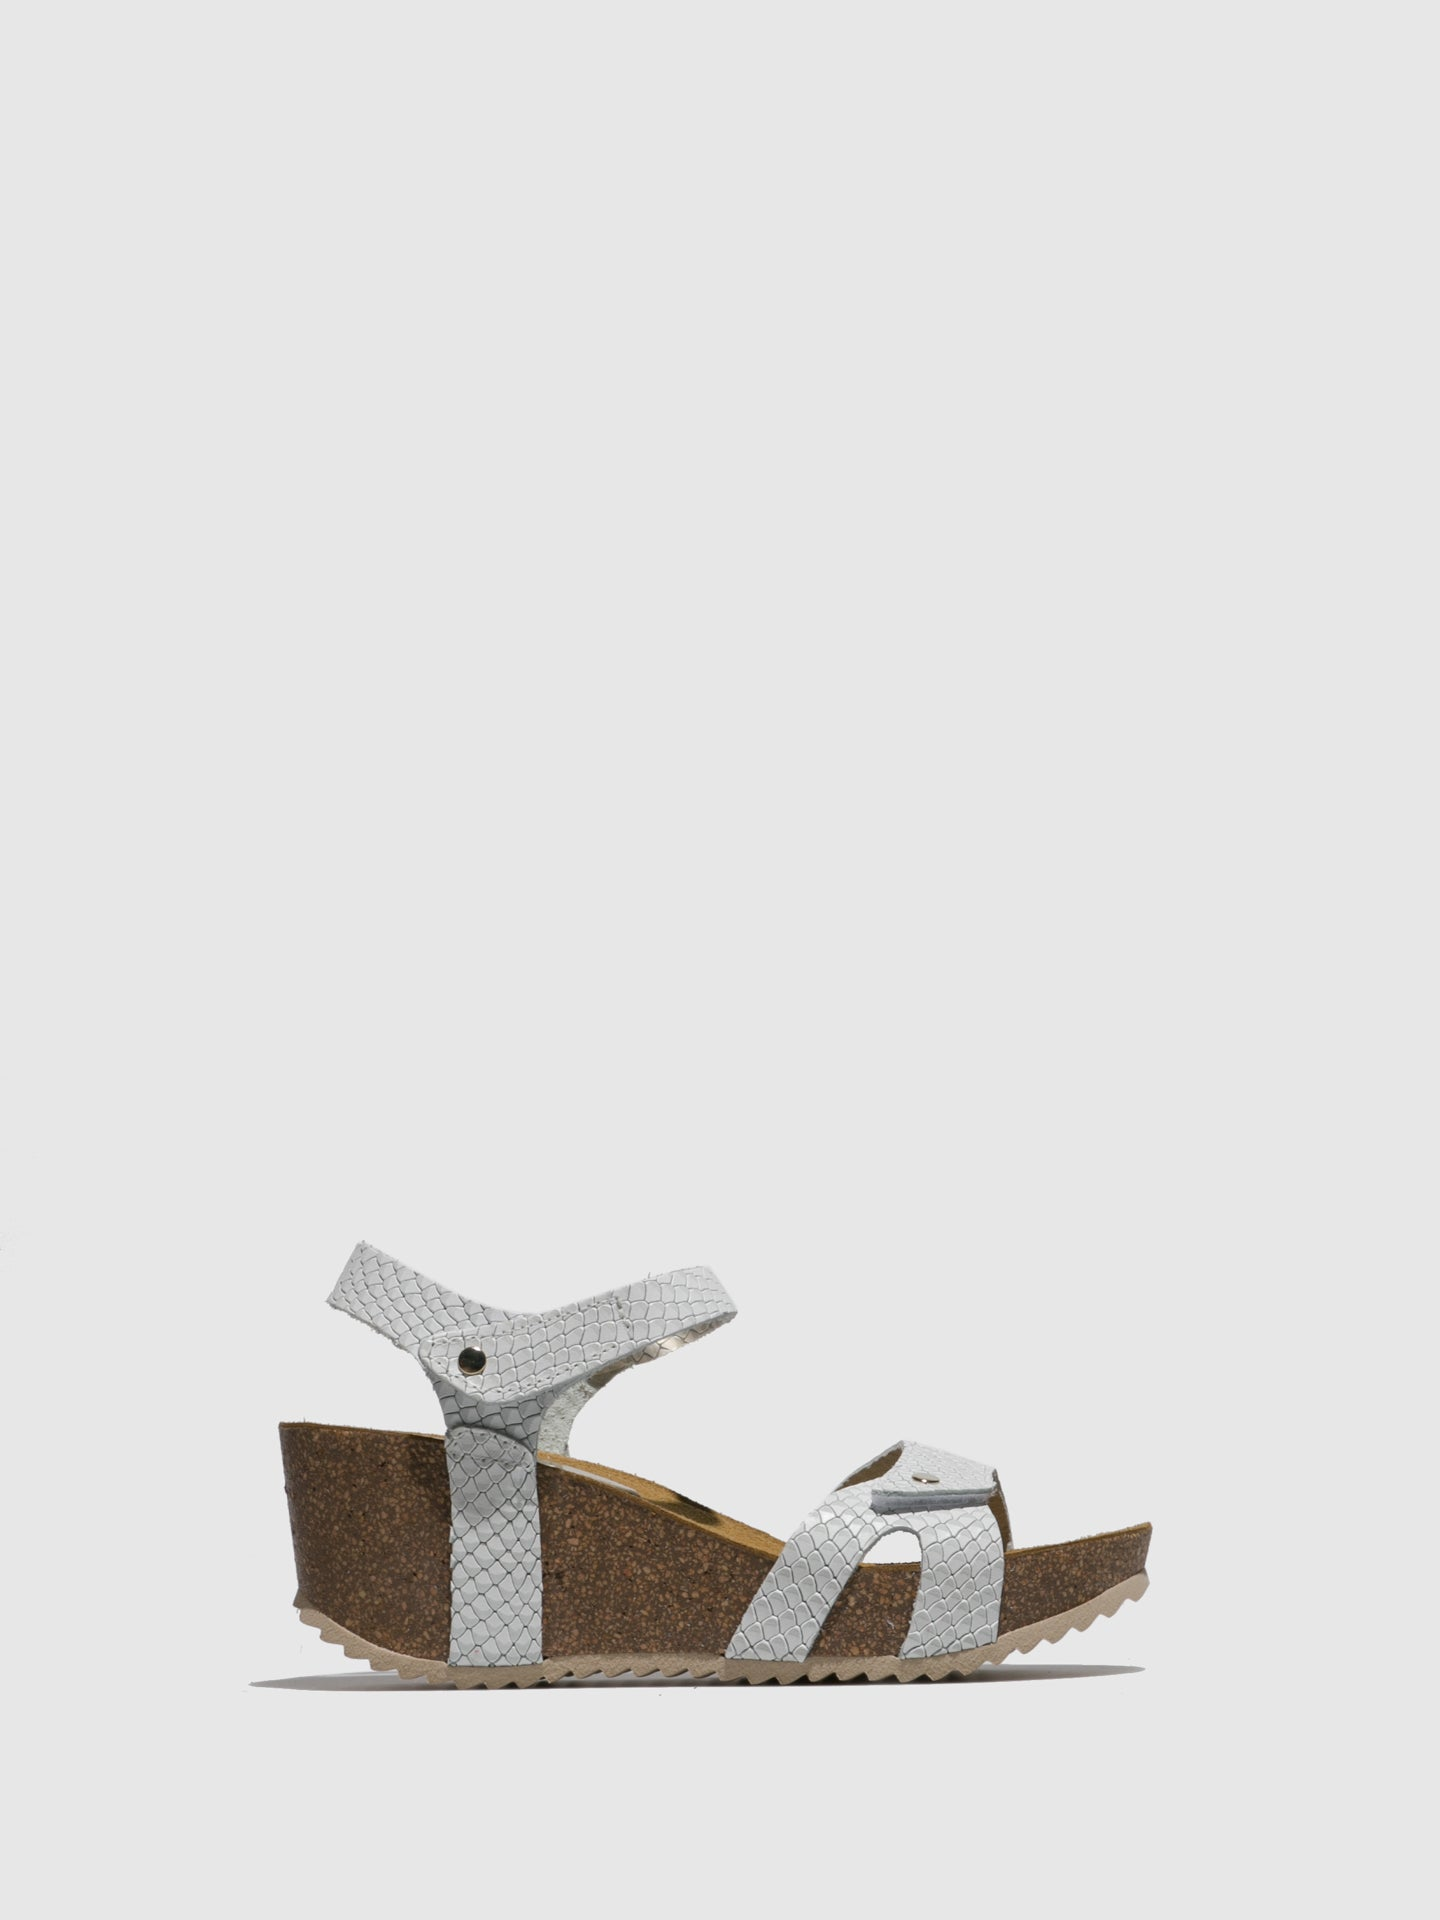 Marila Shoes White Wedge Sandals